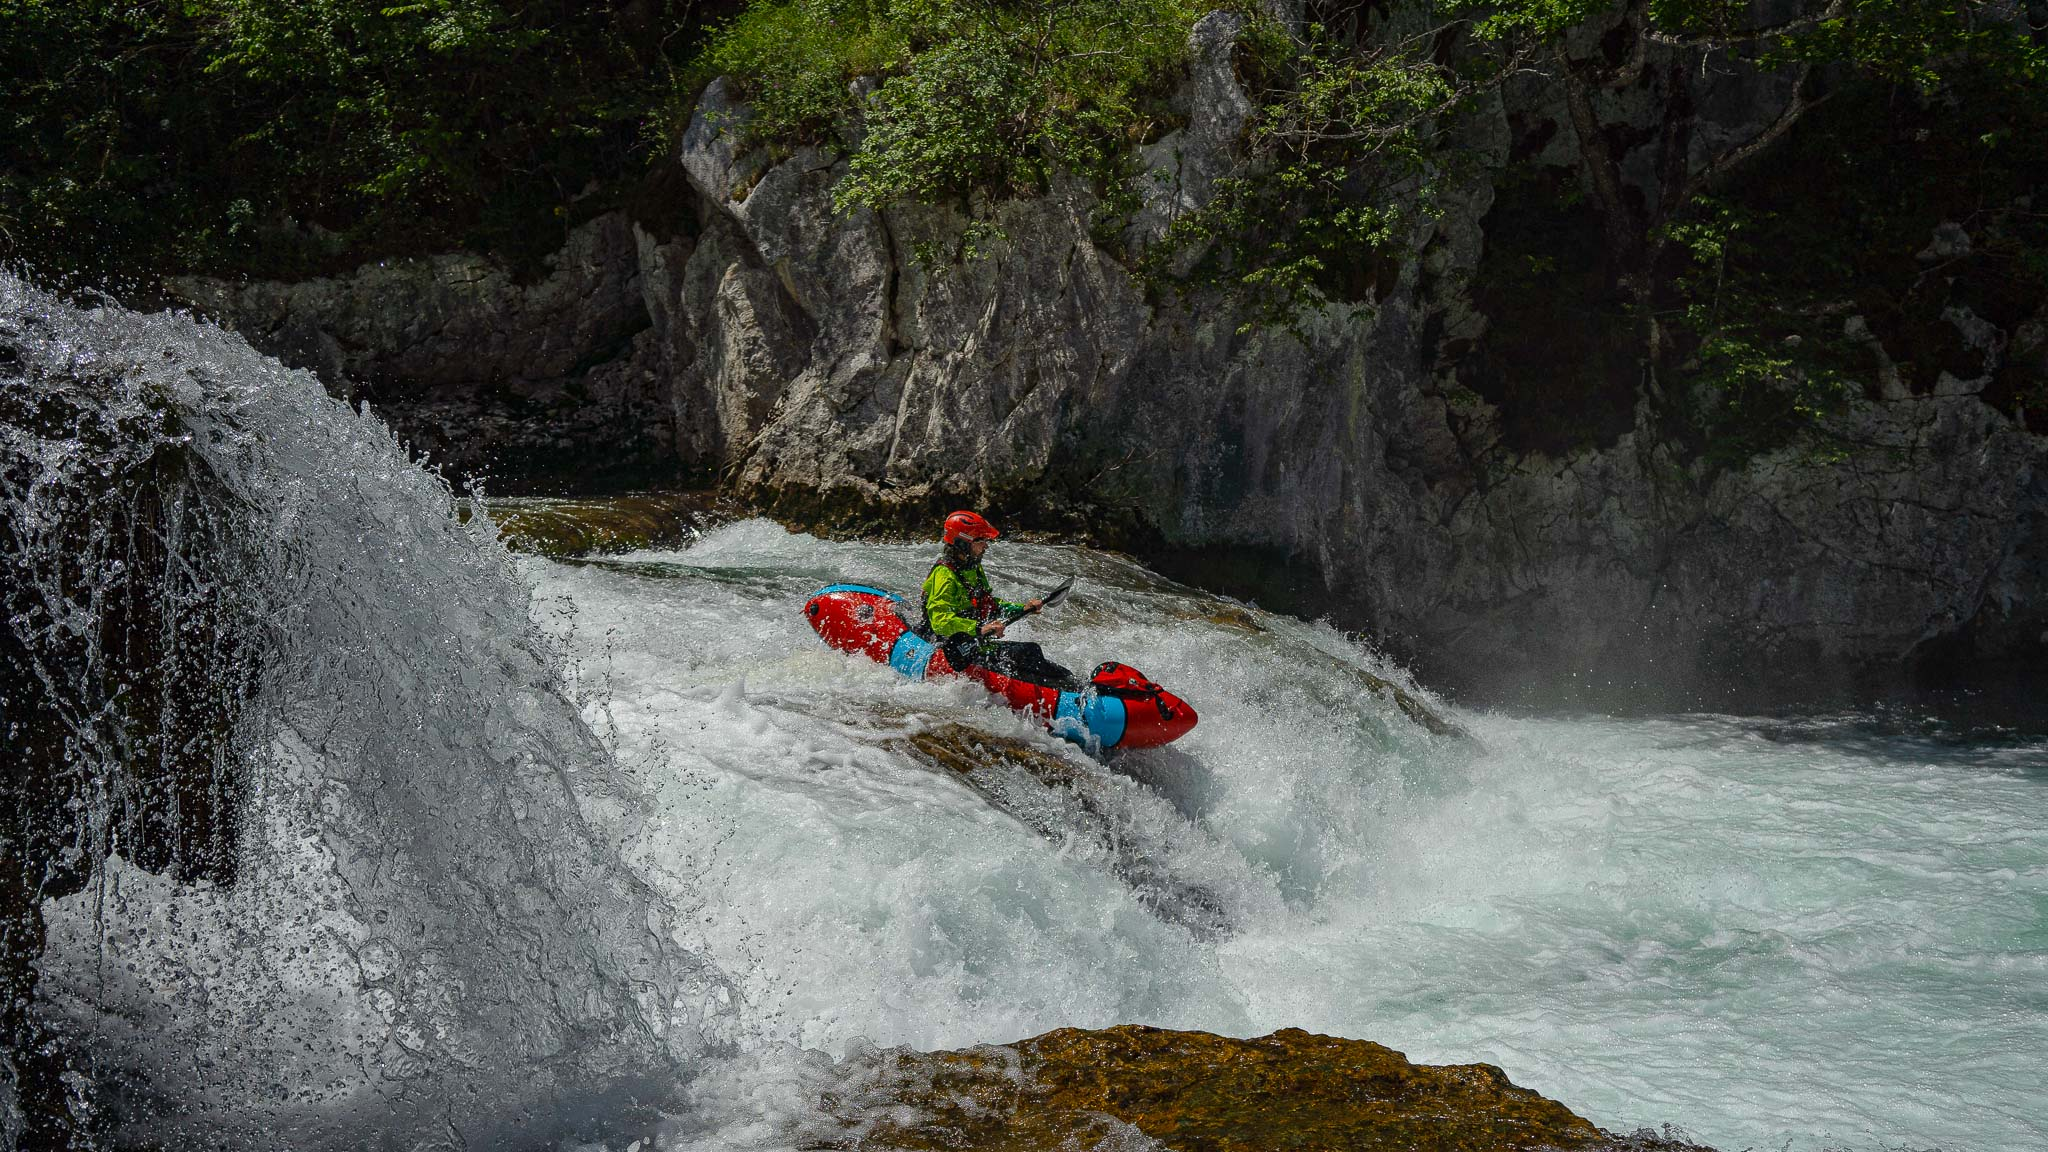 Packrafting Mreznica River Upper part | Raftrek Adventure Travel